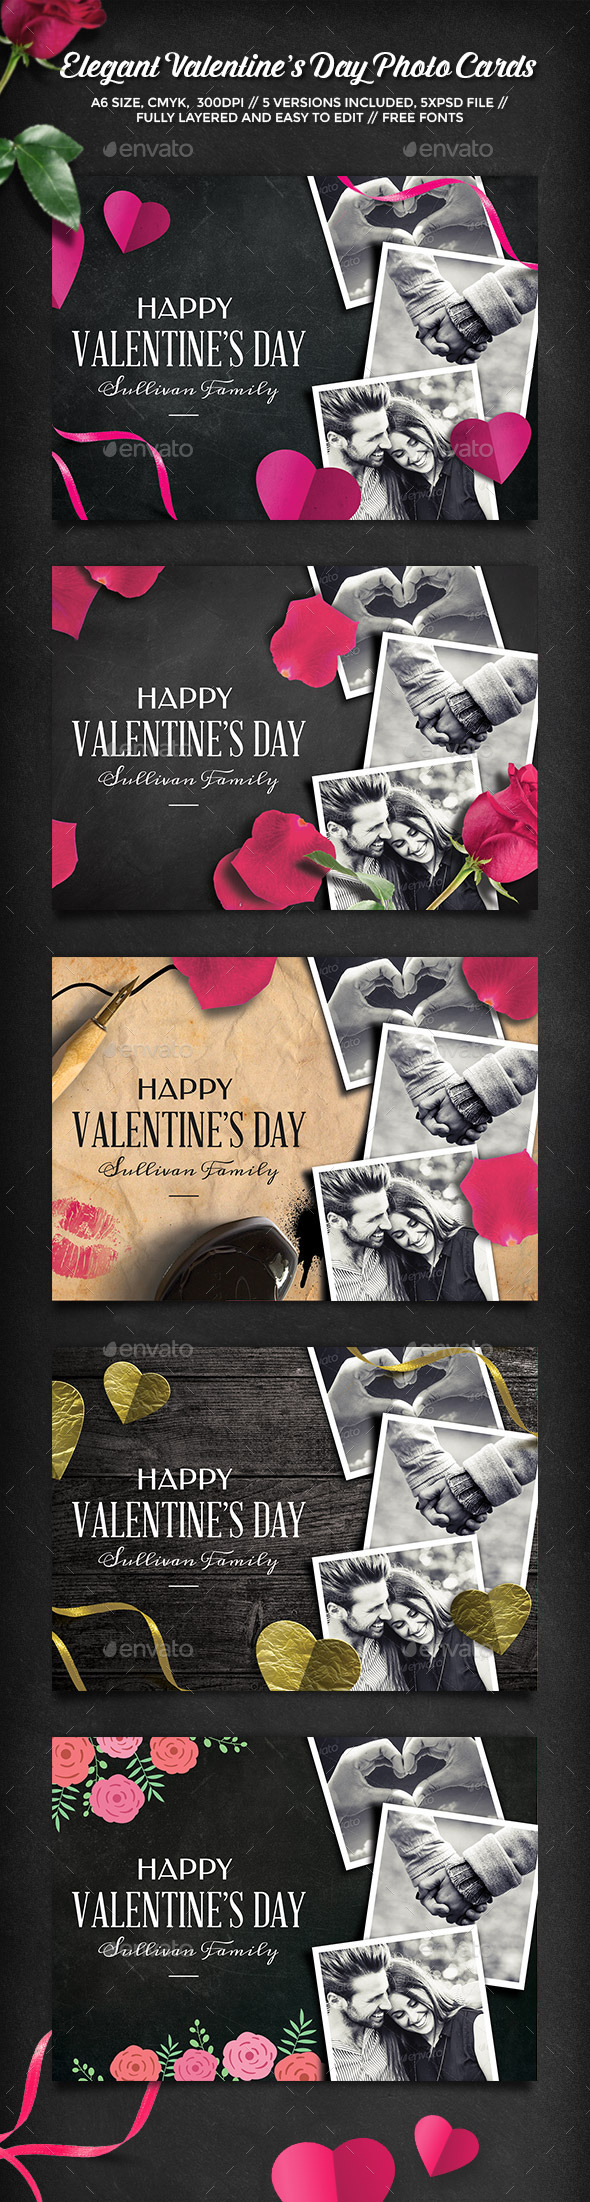 GraphicRiver Elegant Valentine's Day Photo Cards 10112180